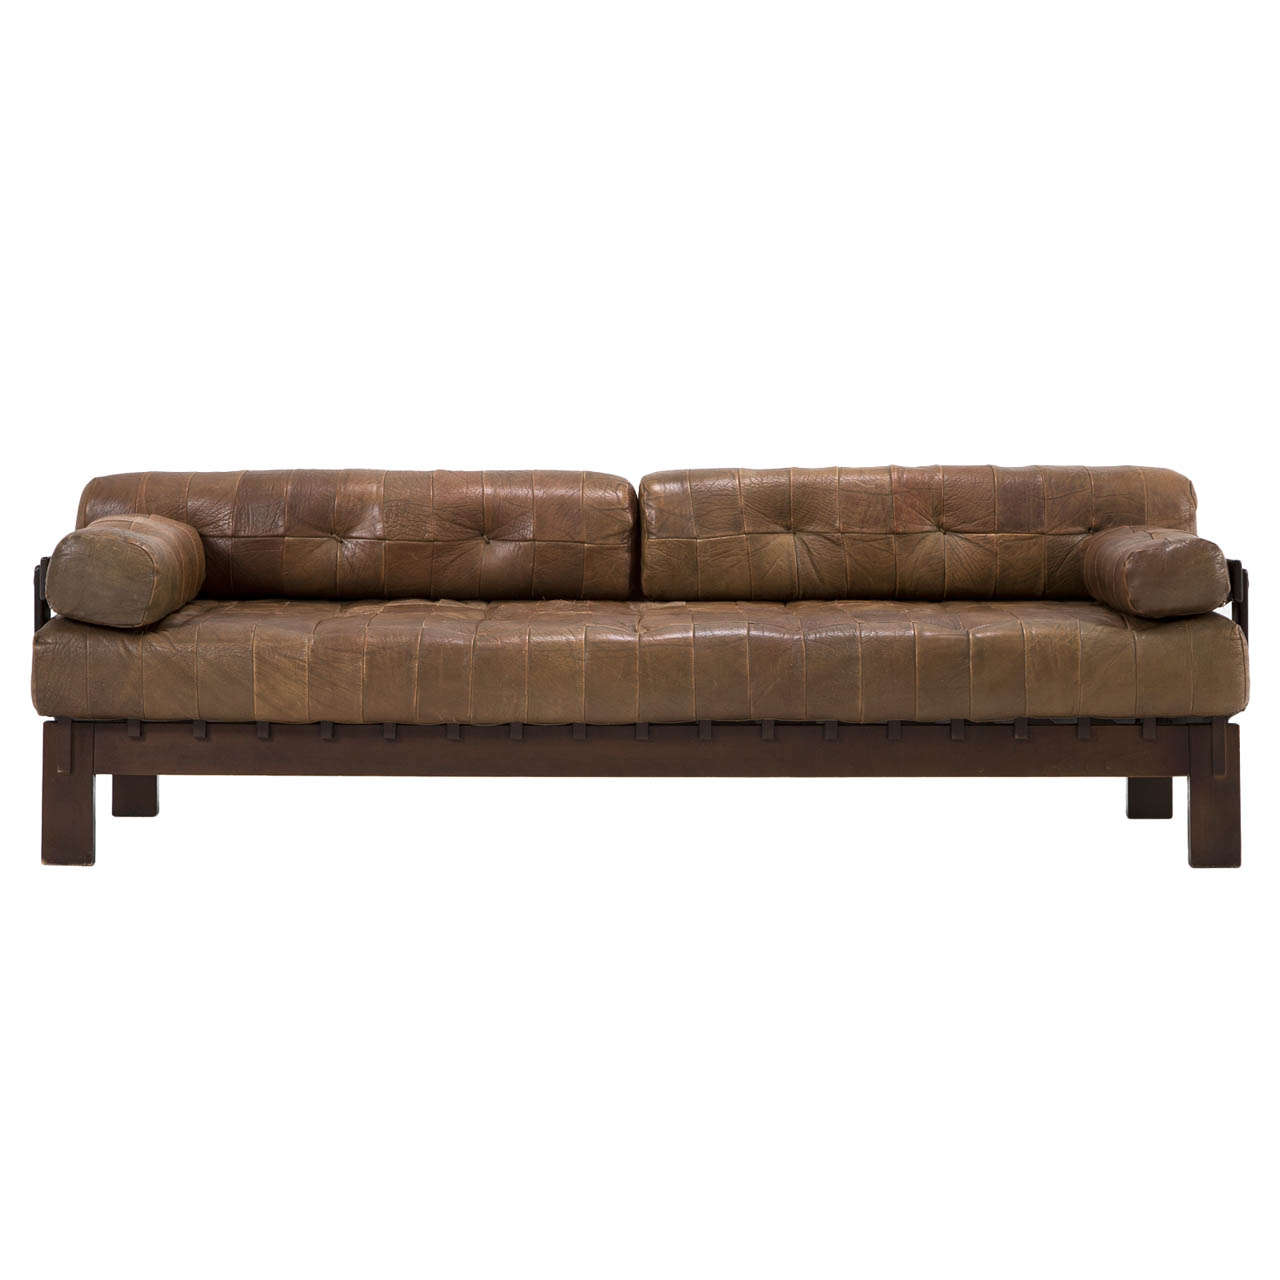 de sede buffalo leather sofa daybed at 1stdibs. Black Bedroom Furniture Sets. Home Design Ideas